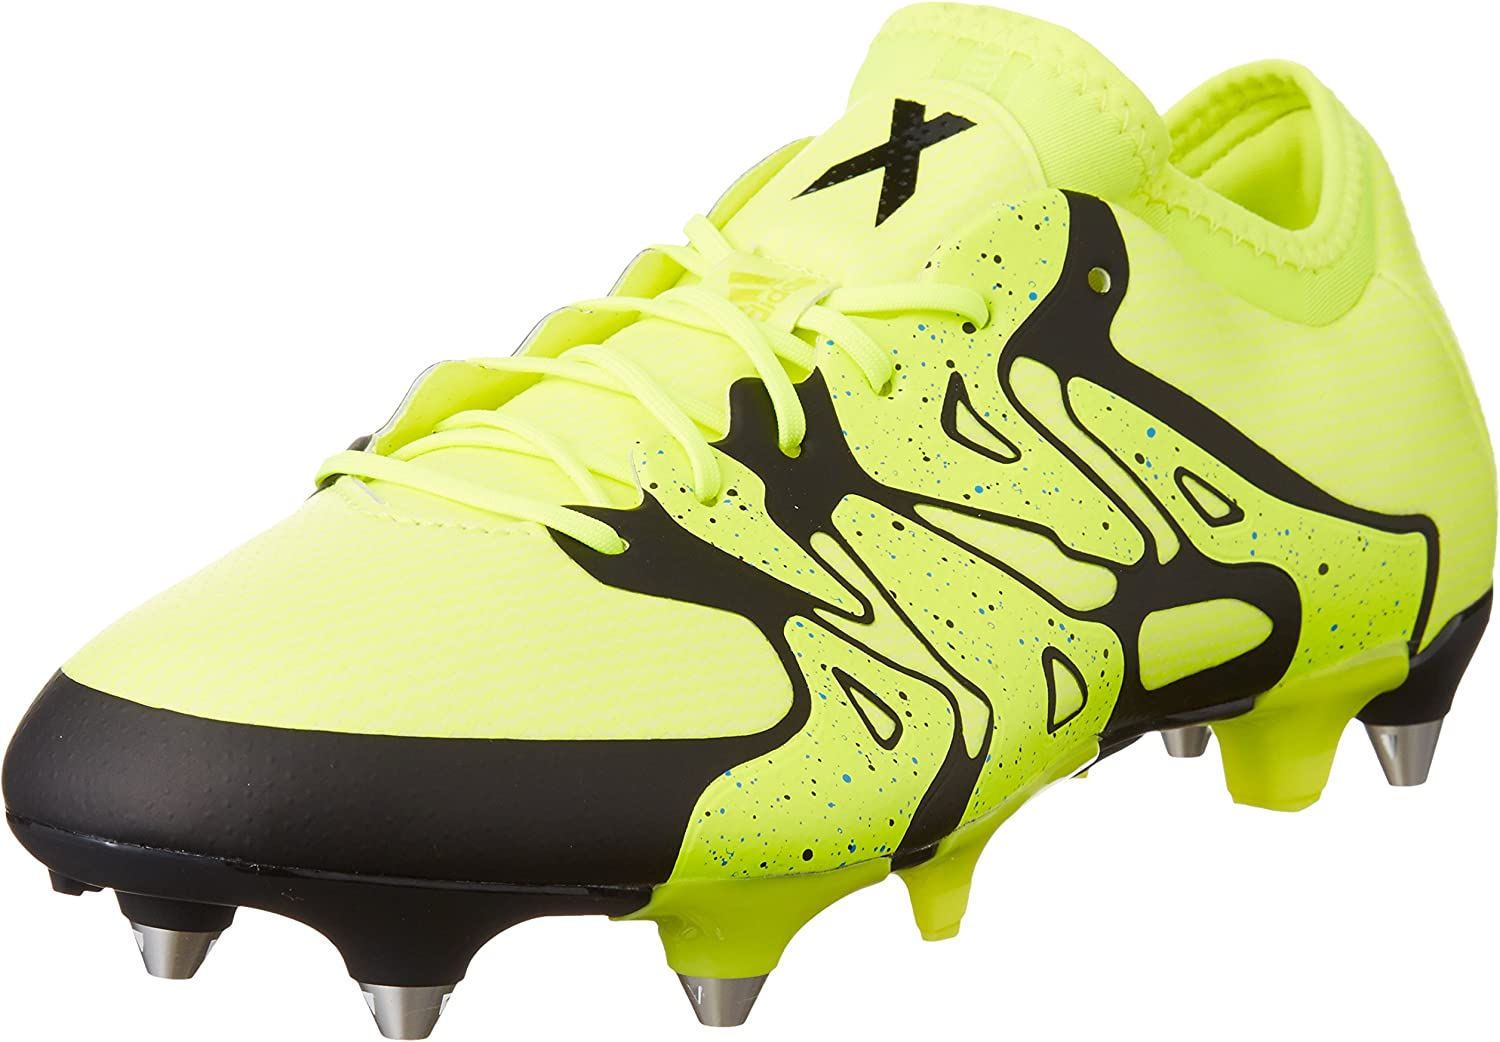 Adidas Men's X 15.1 Soft Ground Football Boots